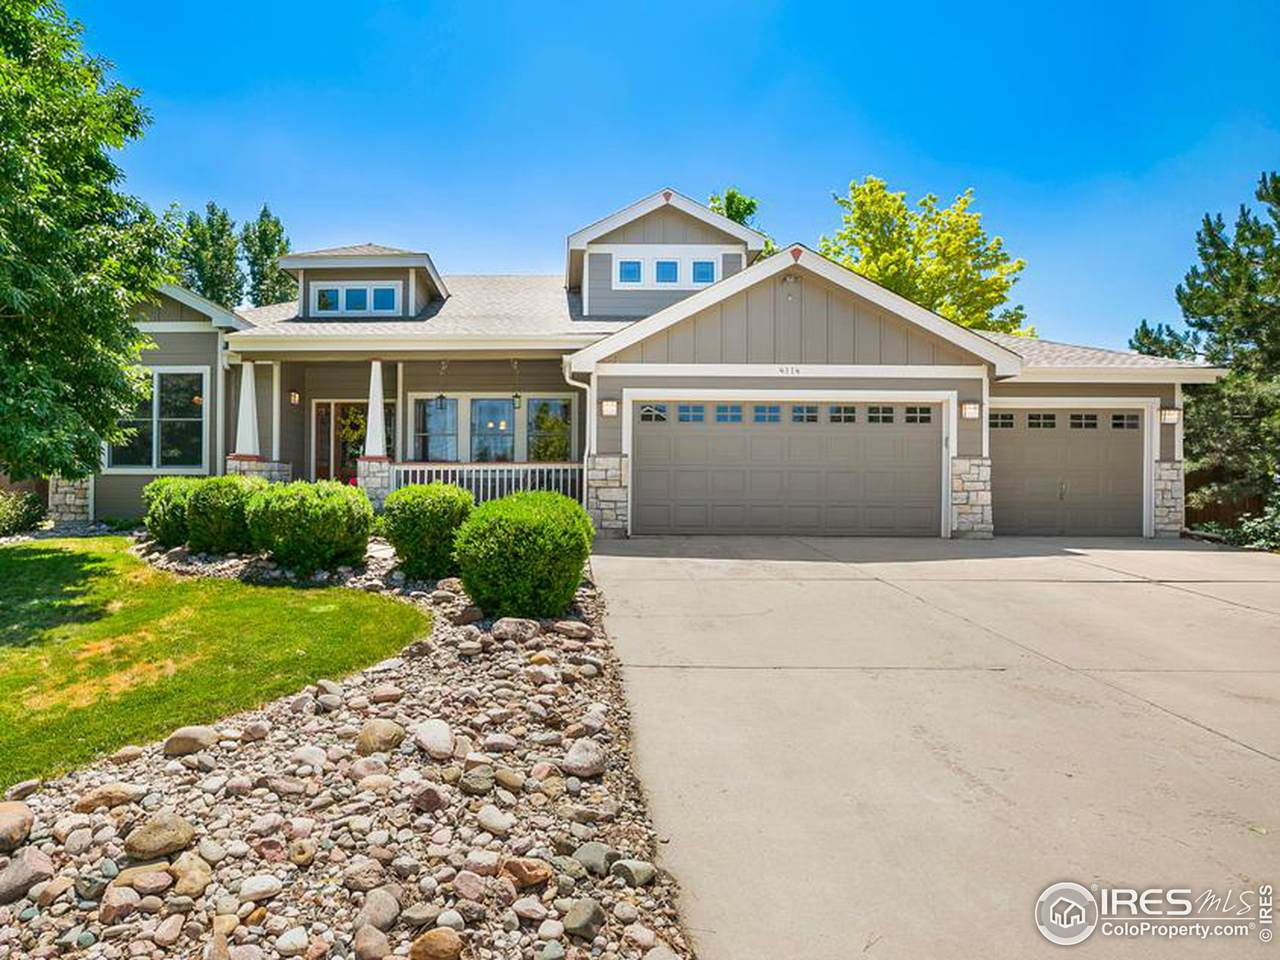 4114 Willowgate Ct - Photo 1